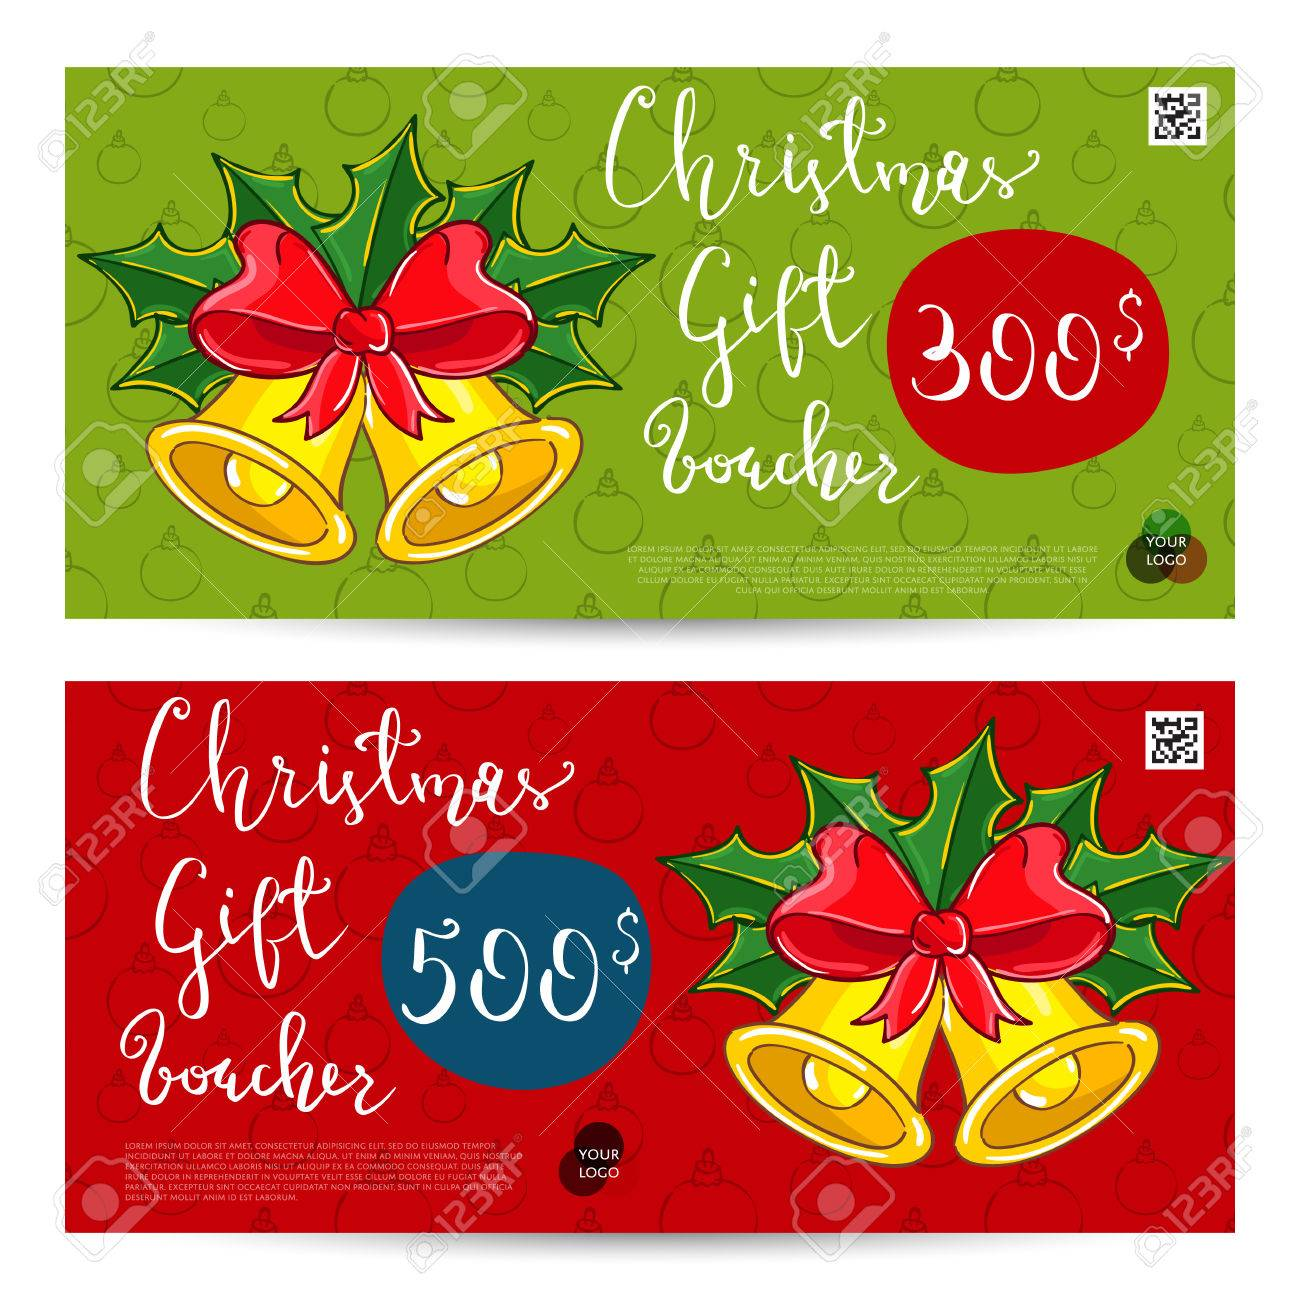 Christmas Gift Voucher Template Gift Coupon With Xmas Attributes